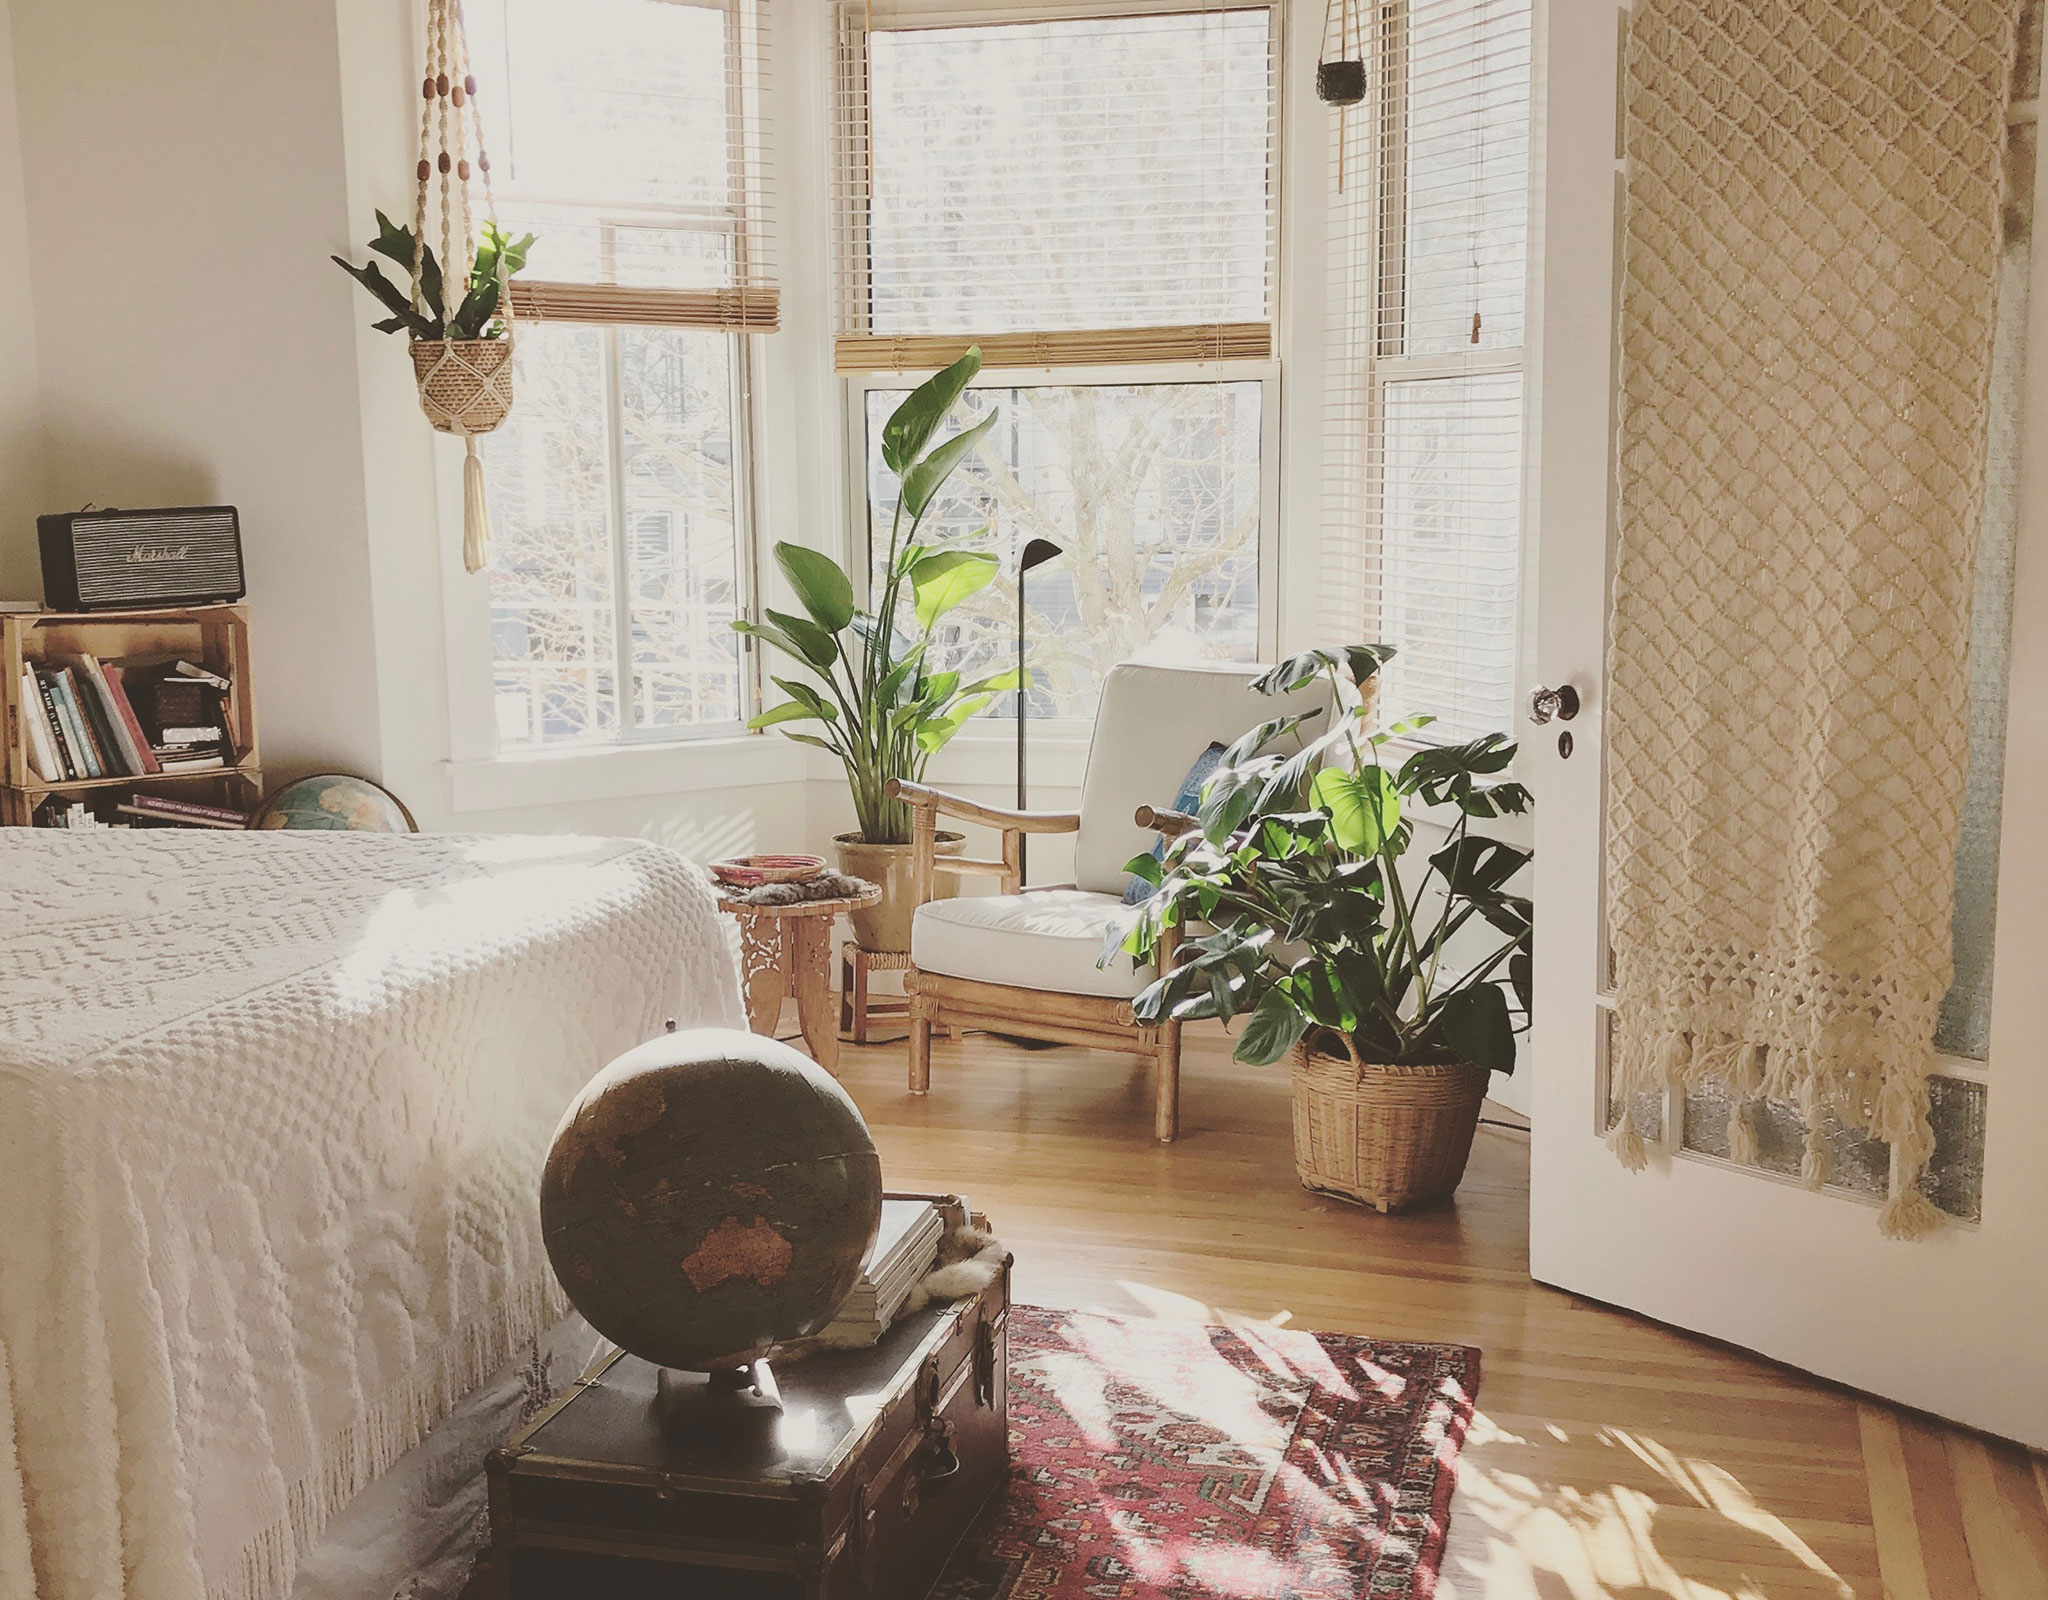 Sunlight shining through a window with plants